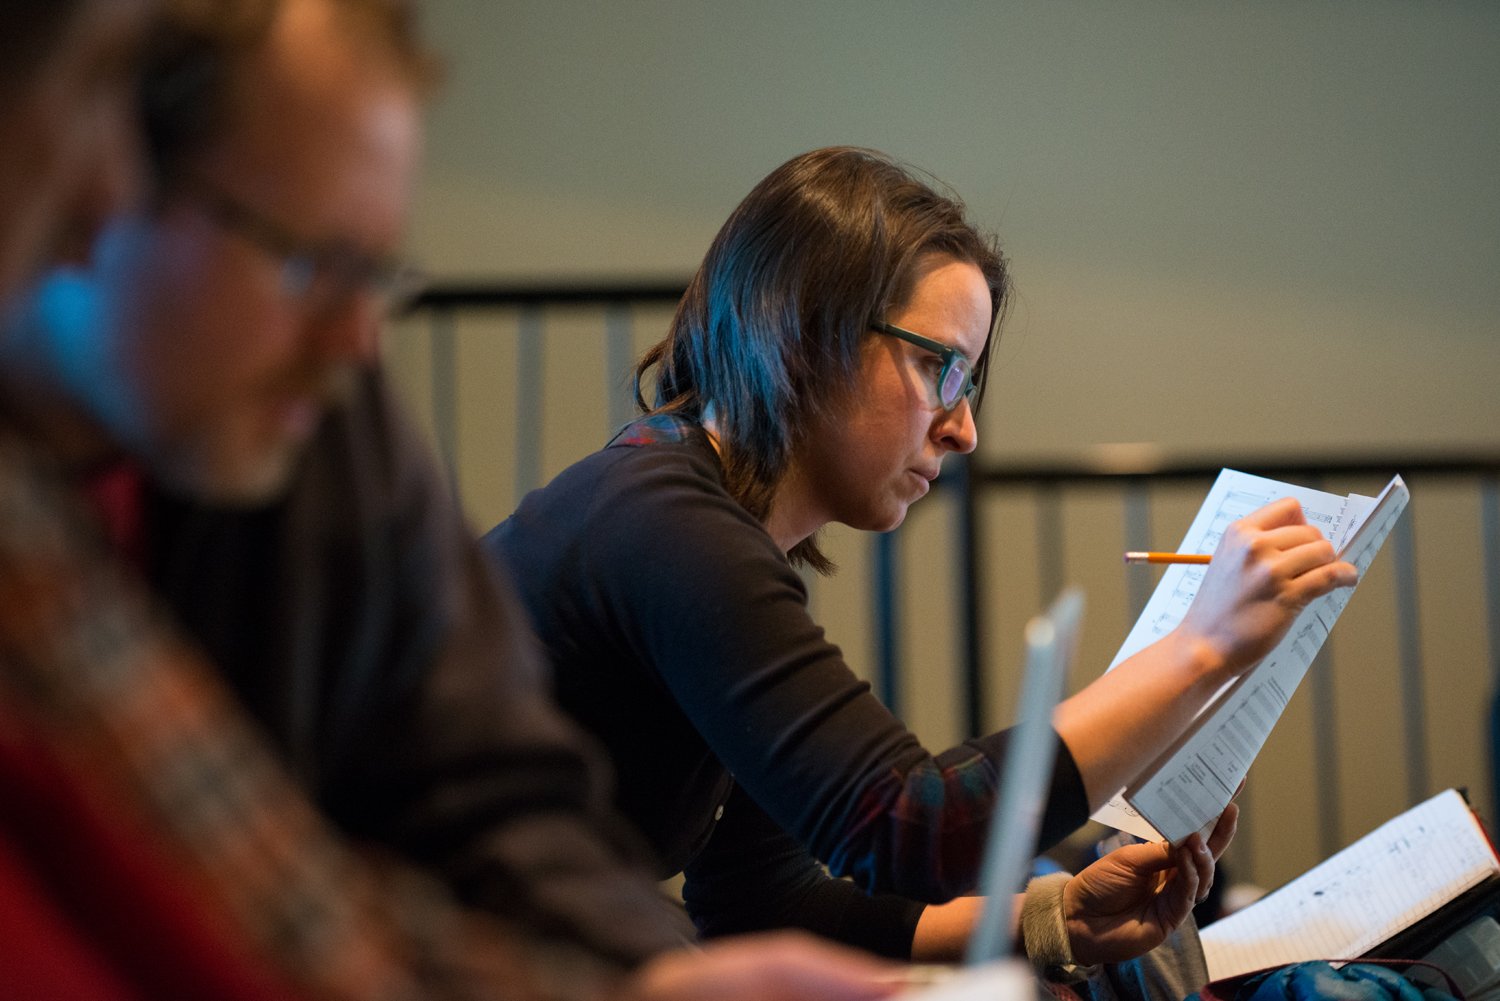 Carmen takes careful notes as she hears her composition come to life during first reading